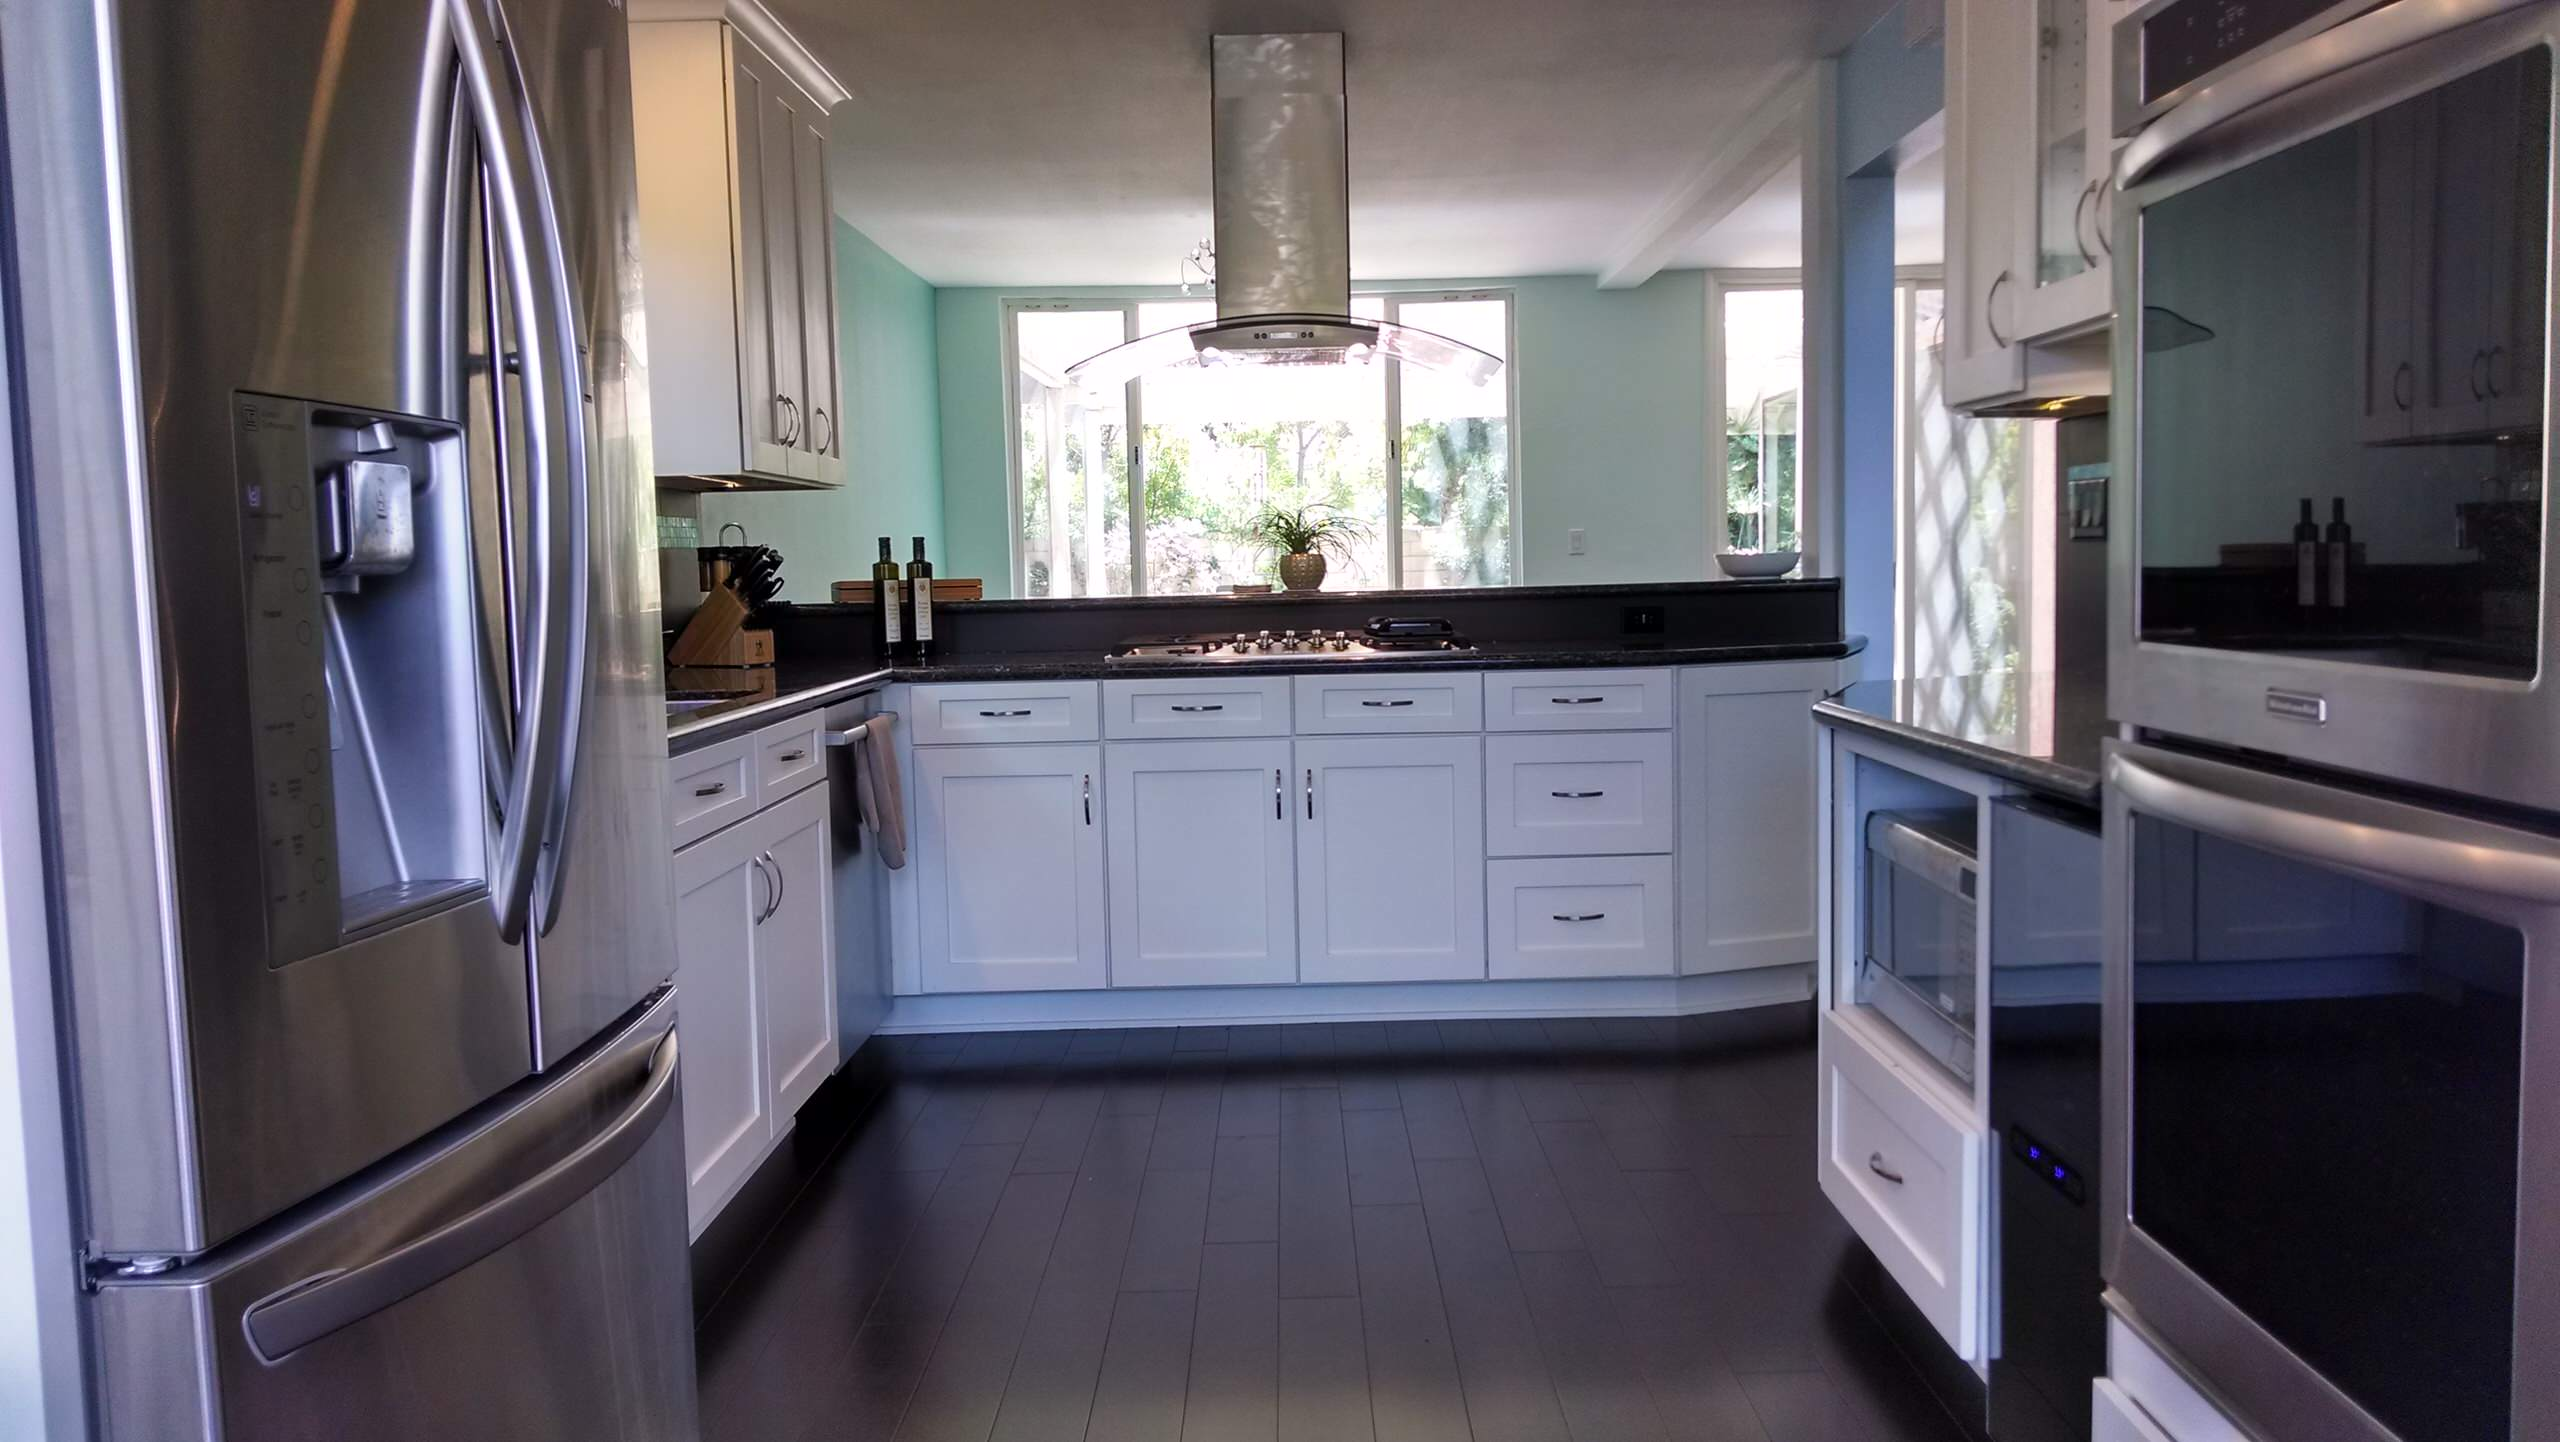 Los Angeles Area Kitchen Remodel